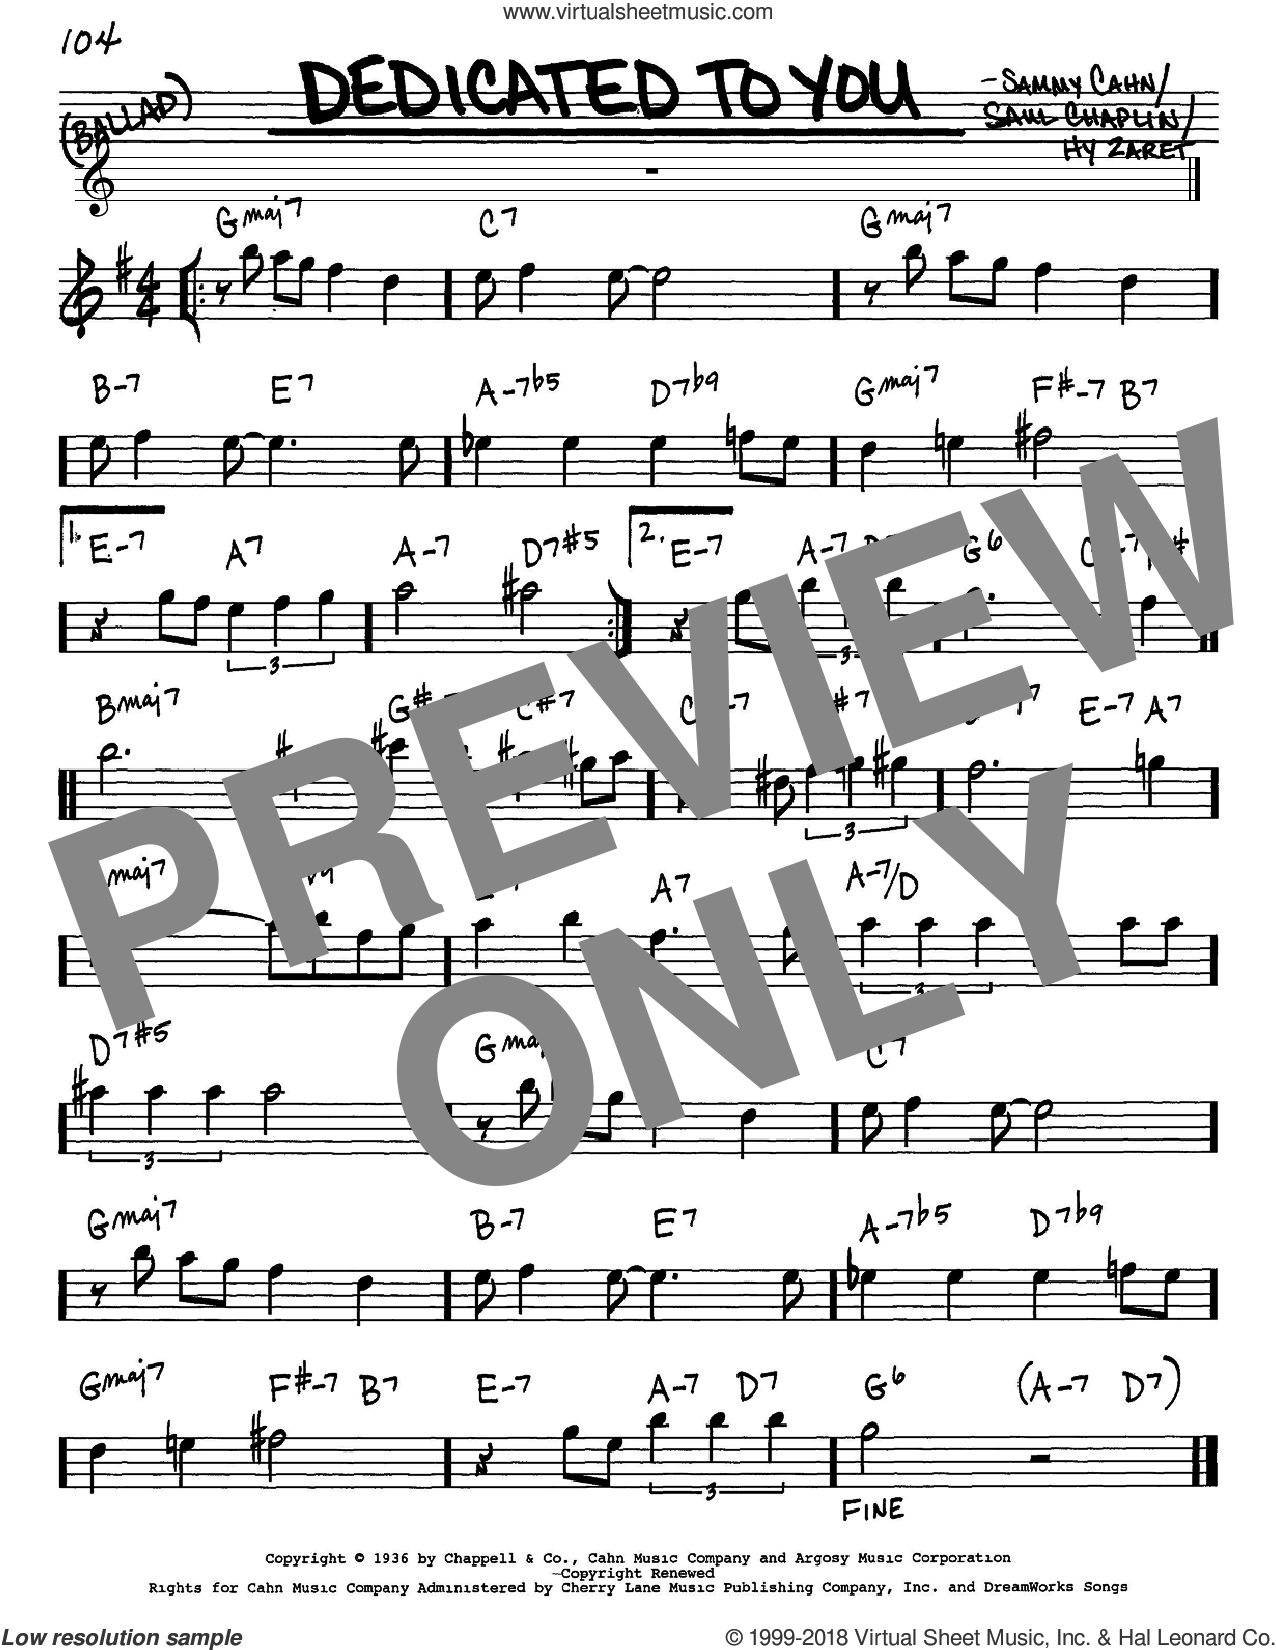 Dedicated To You sheet music for voice and other instruments (Eb) by Saul Chaplin, Hy Zaret and Sammy Cahn